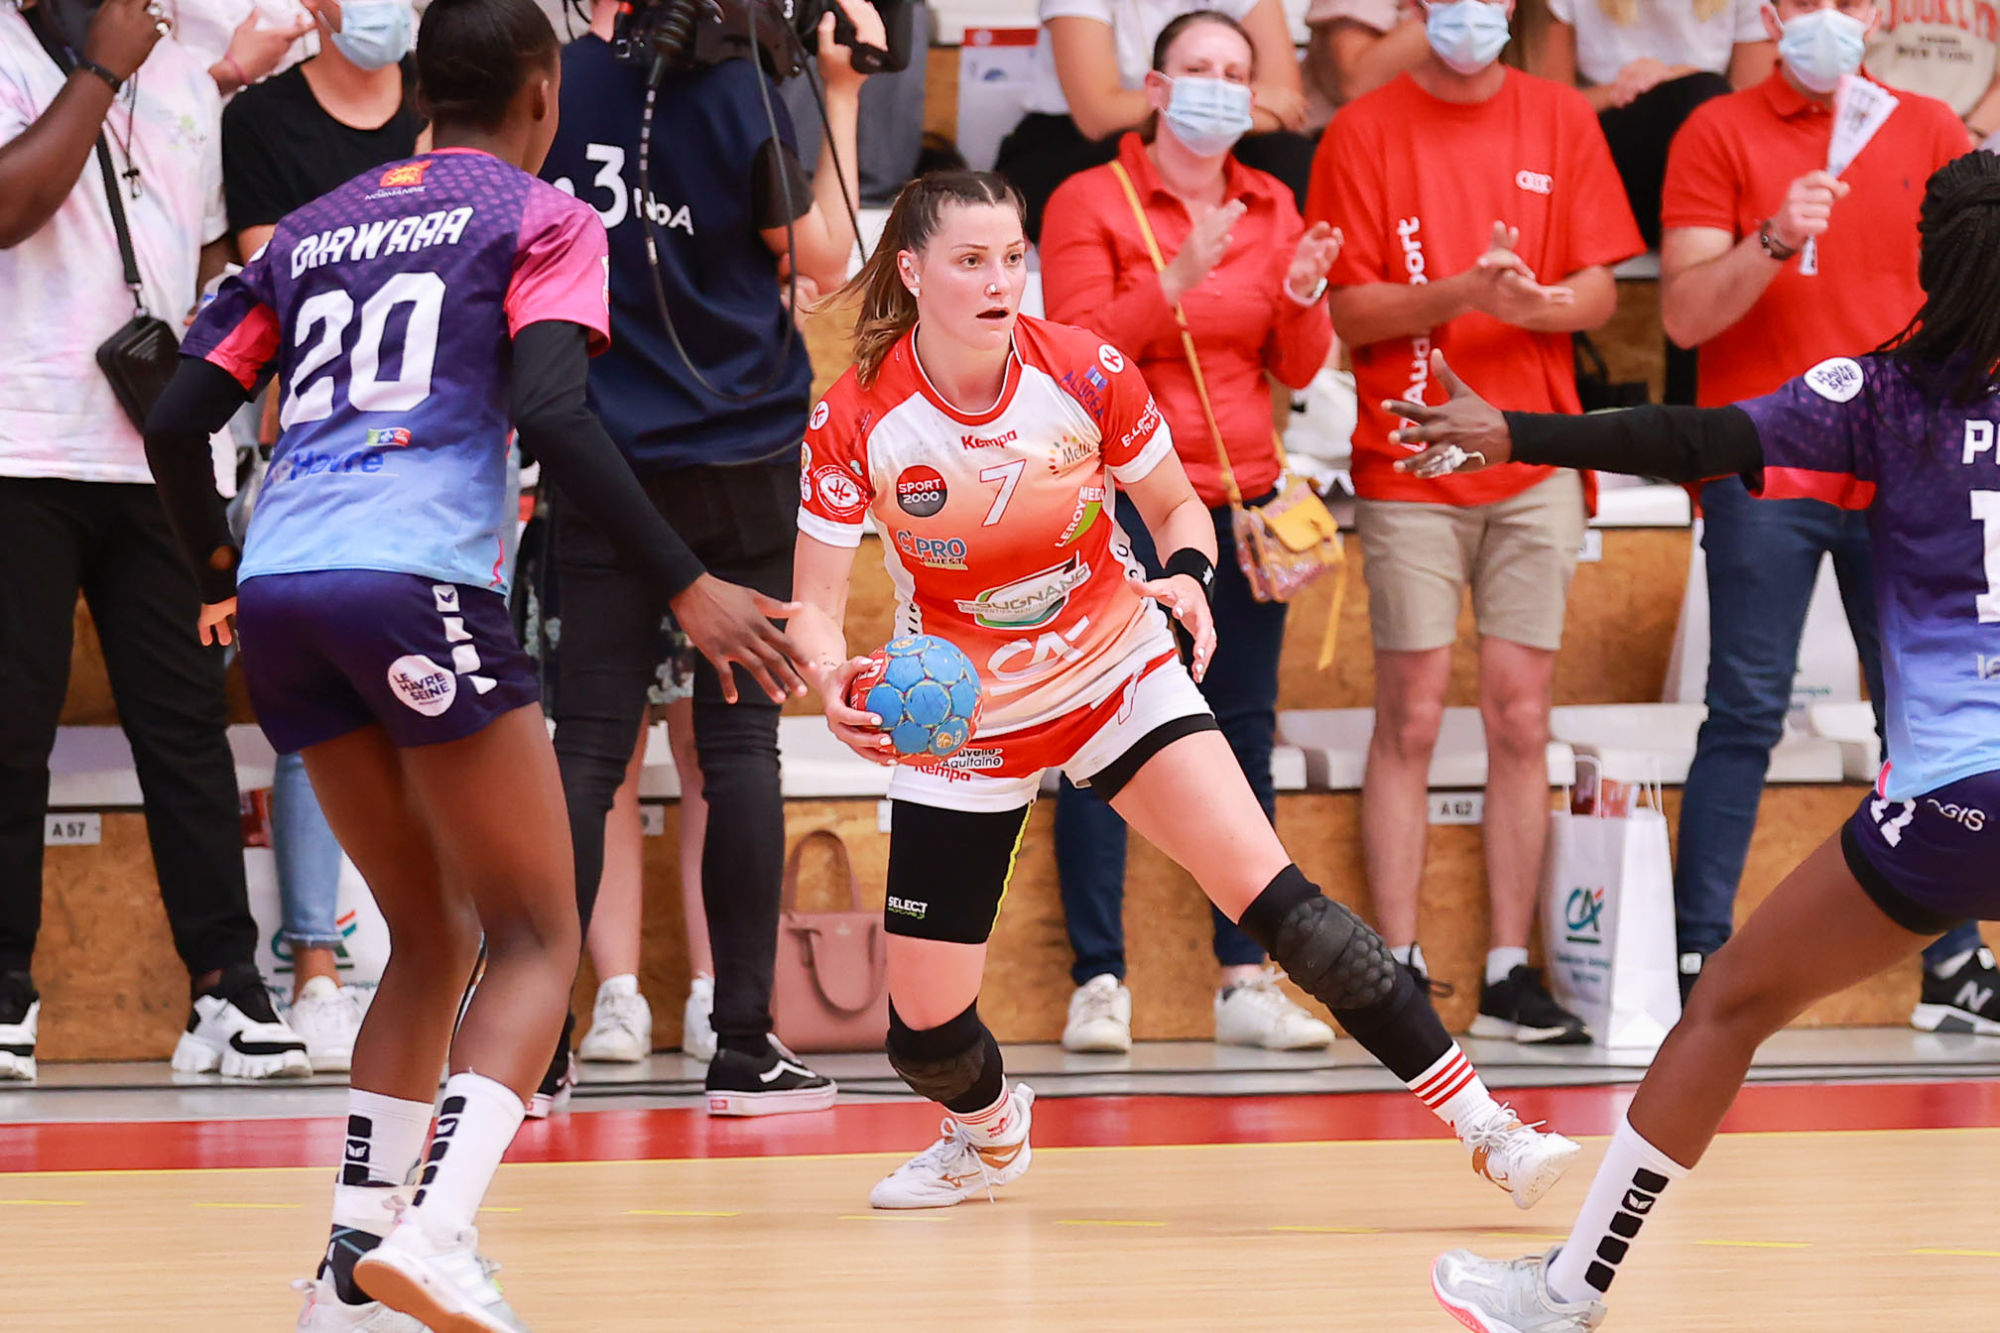 Lesly Briemant of Celles sur Belle, Adja-sanou PAYE of Le Havre, Mathita DIAWARA of Le Havre during the second Final match D2F between Celles-sur-Belle and Le Havre  on June 5, 2021 in Celles-sur-Belle, France. (Photo by Cedric Vlemmings/Icon Sport) - Lesly BRIEMANT - Adja Sanou PAYE - Mathita DIAWARA -  (France)